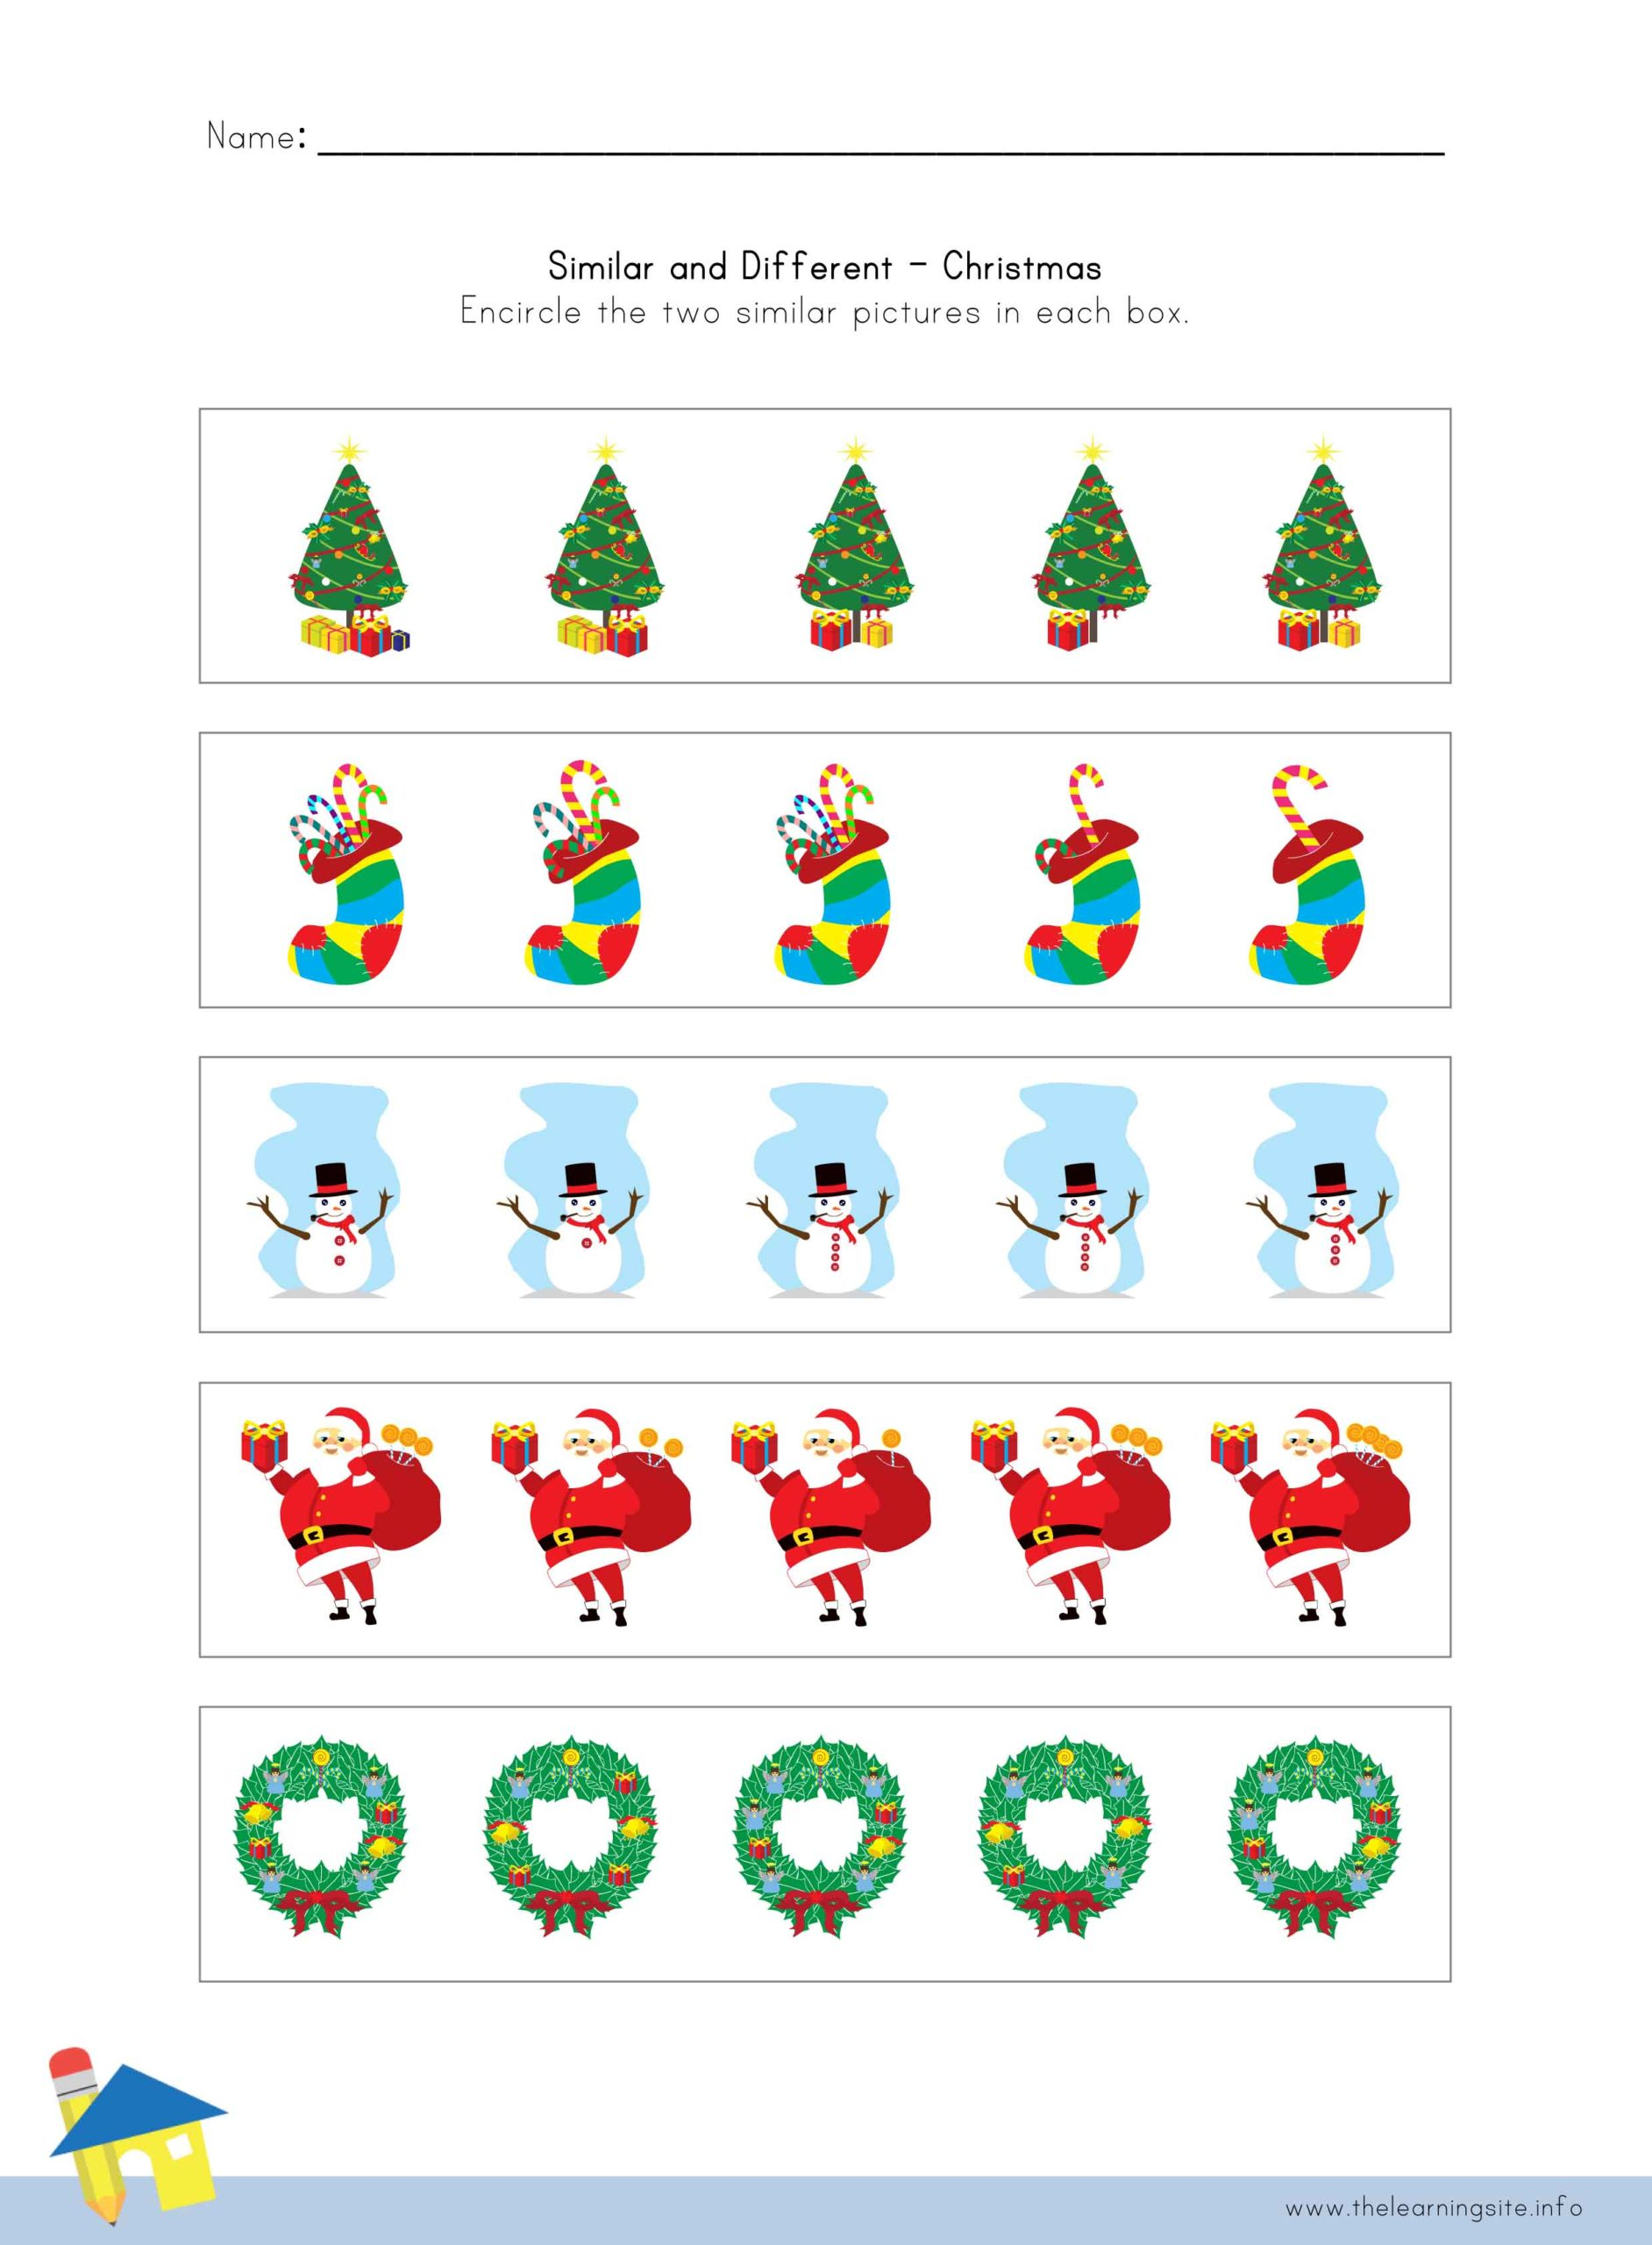 Christmas Similar And Different Worksheet 3 The Learning